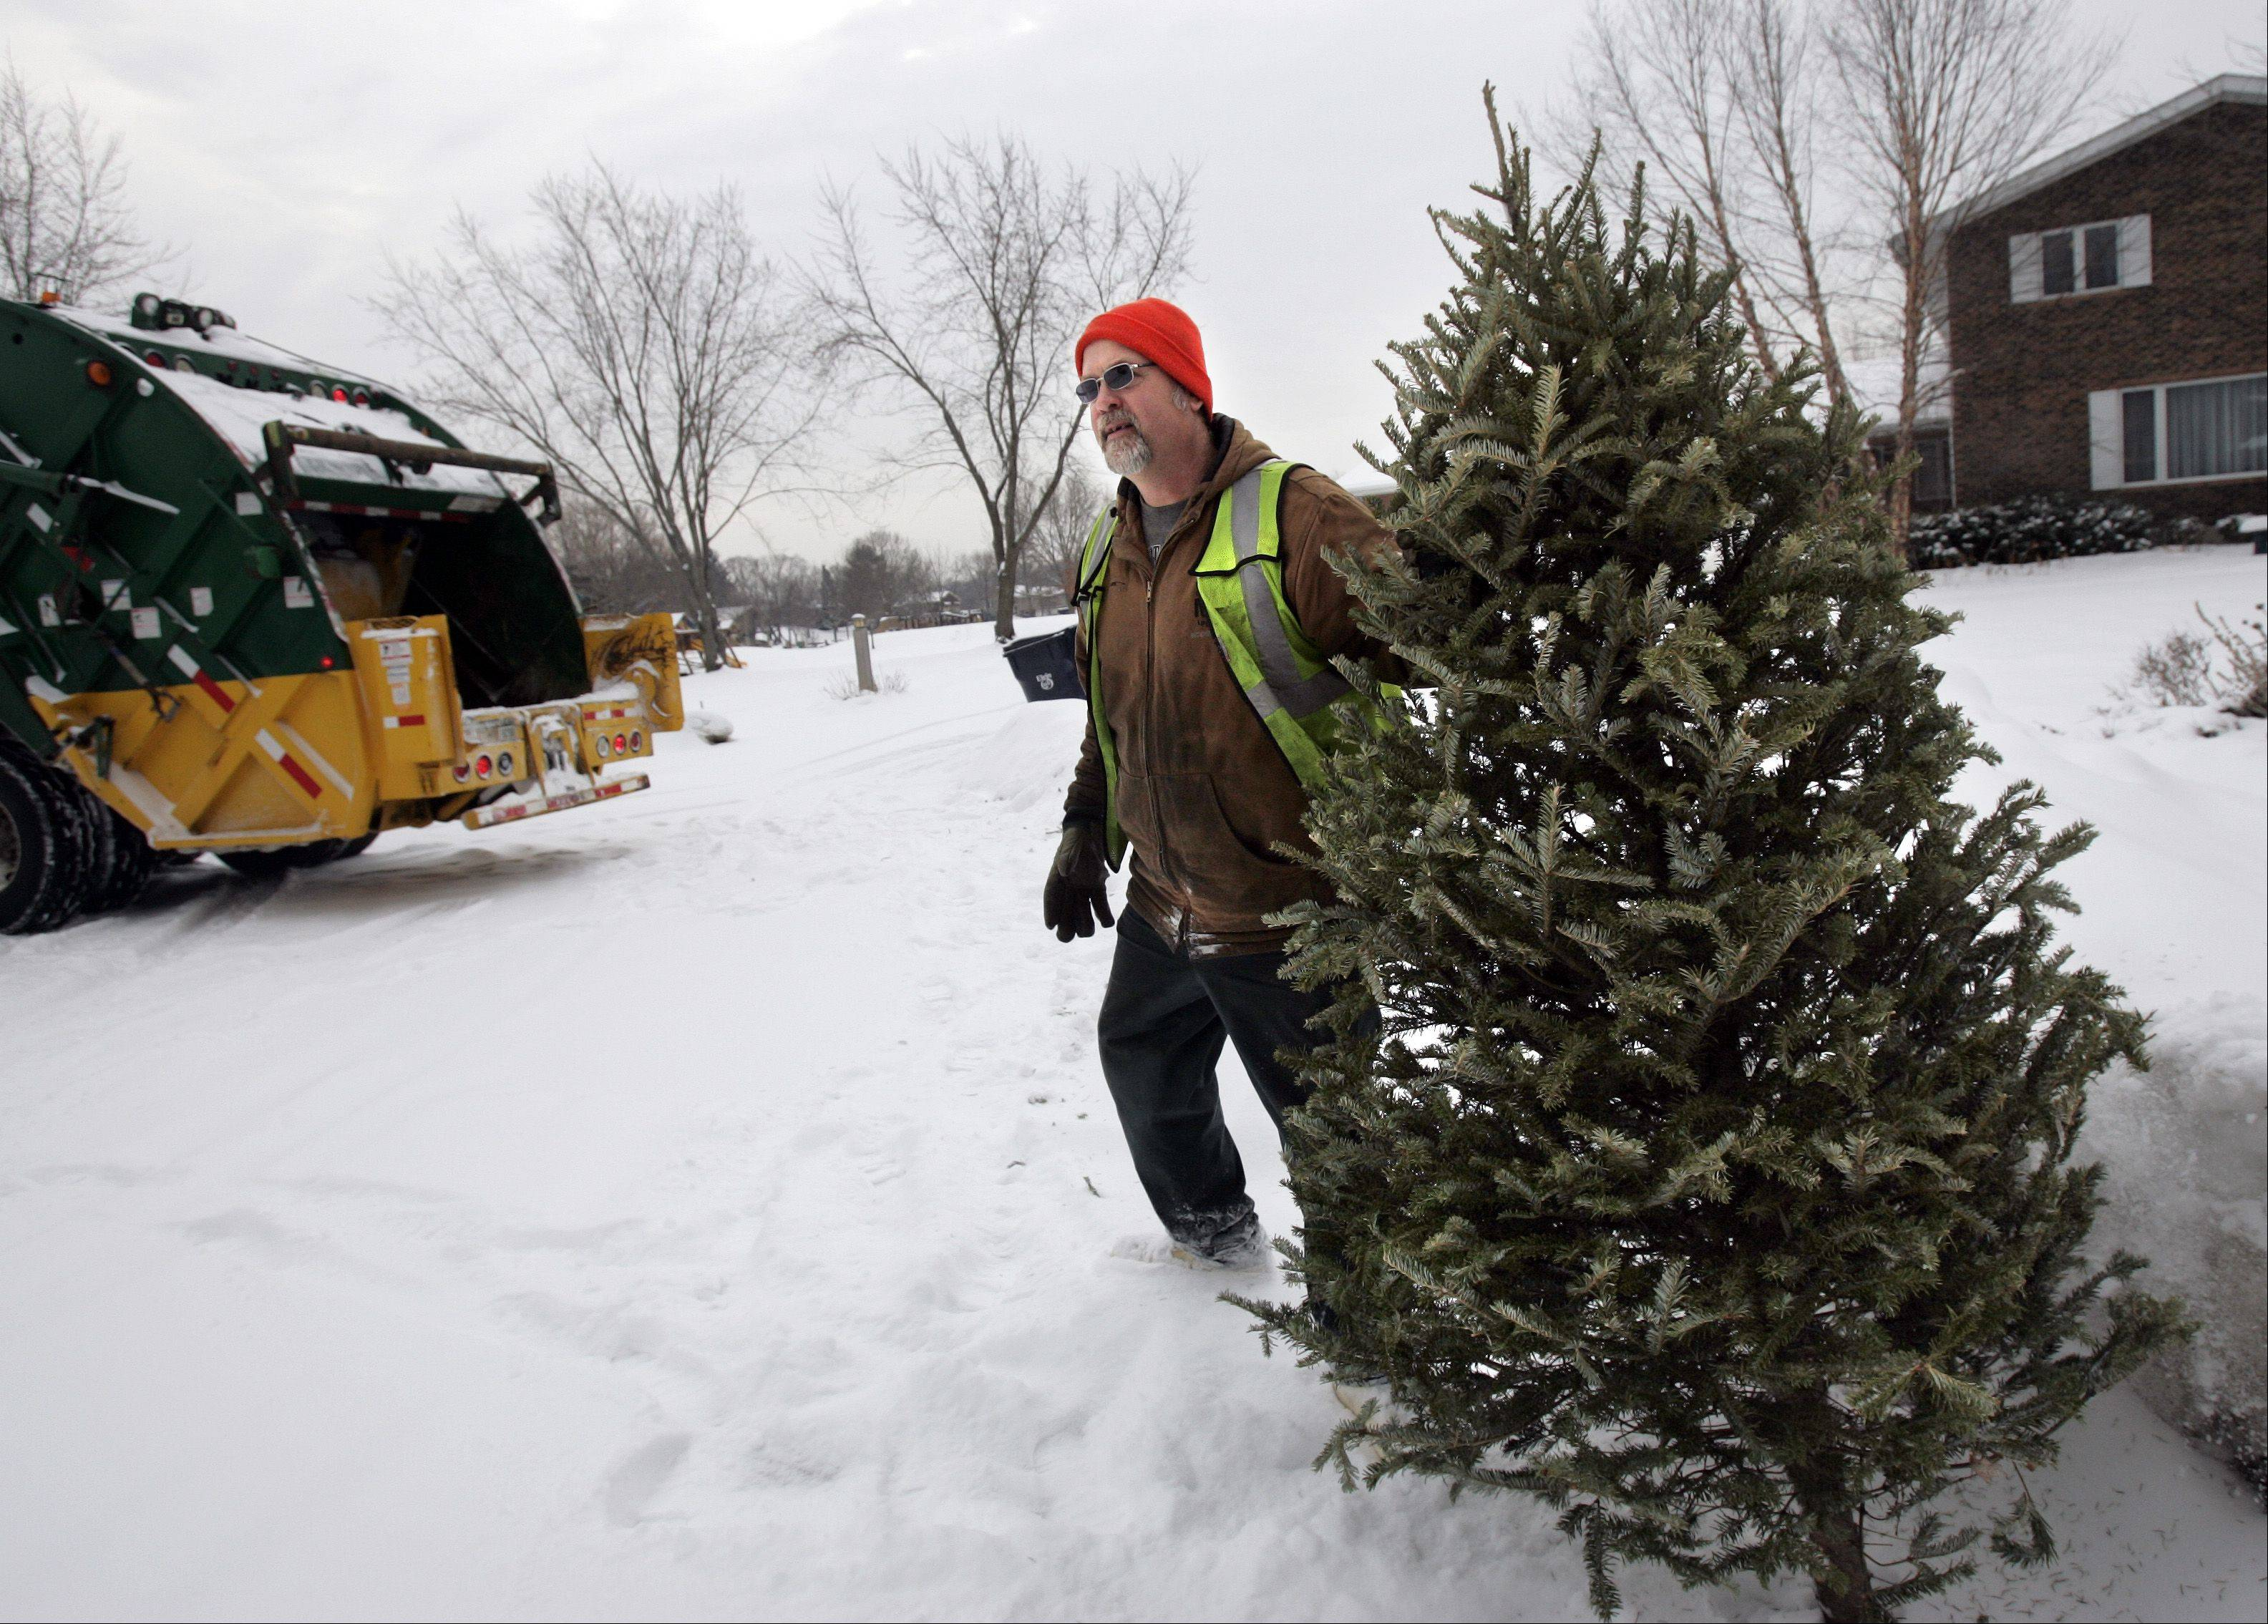 BRIAN HILL/bhill@dailyherald.com, 2009 Most towns in Kane County offer free Christmas tree recycling in early January.